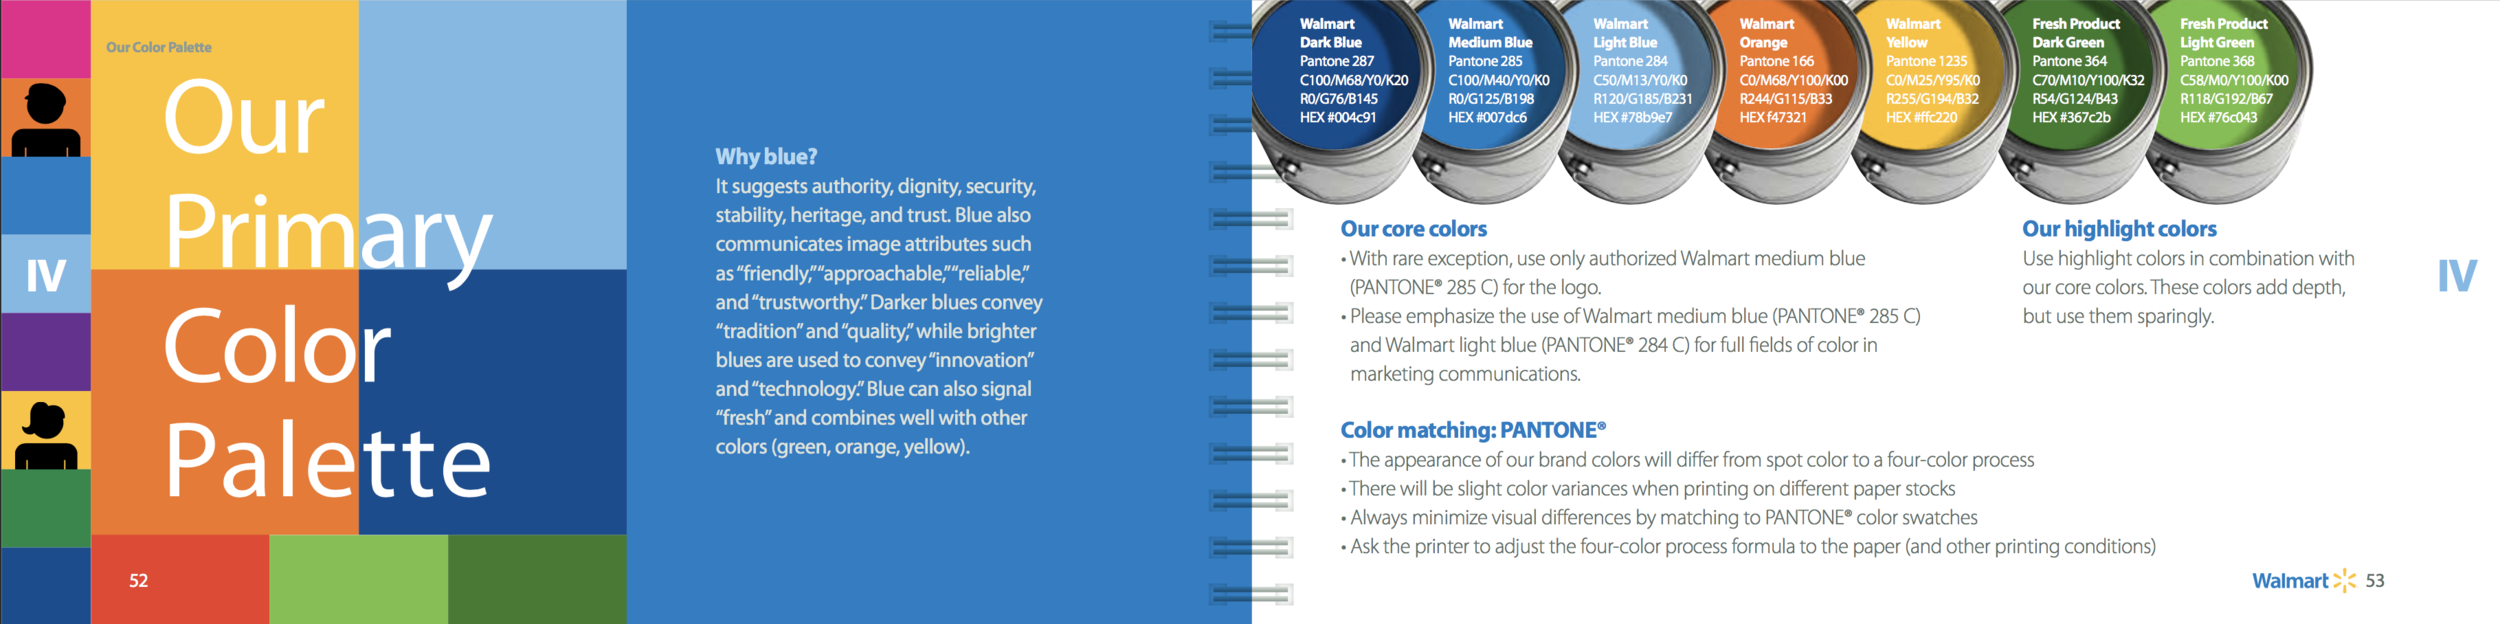 A couple of screen shots from Walmart's style guide for reference. The entire document is incredibly thorough. Most style guides don't need this much depth, but the more info the better.